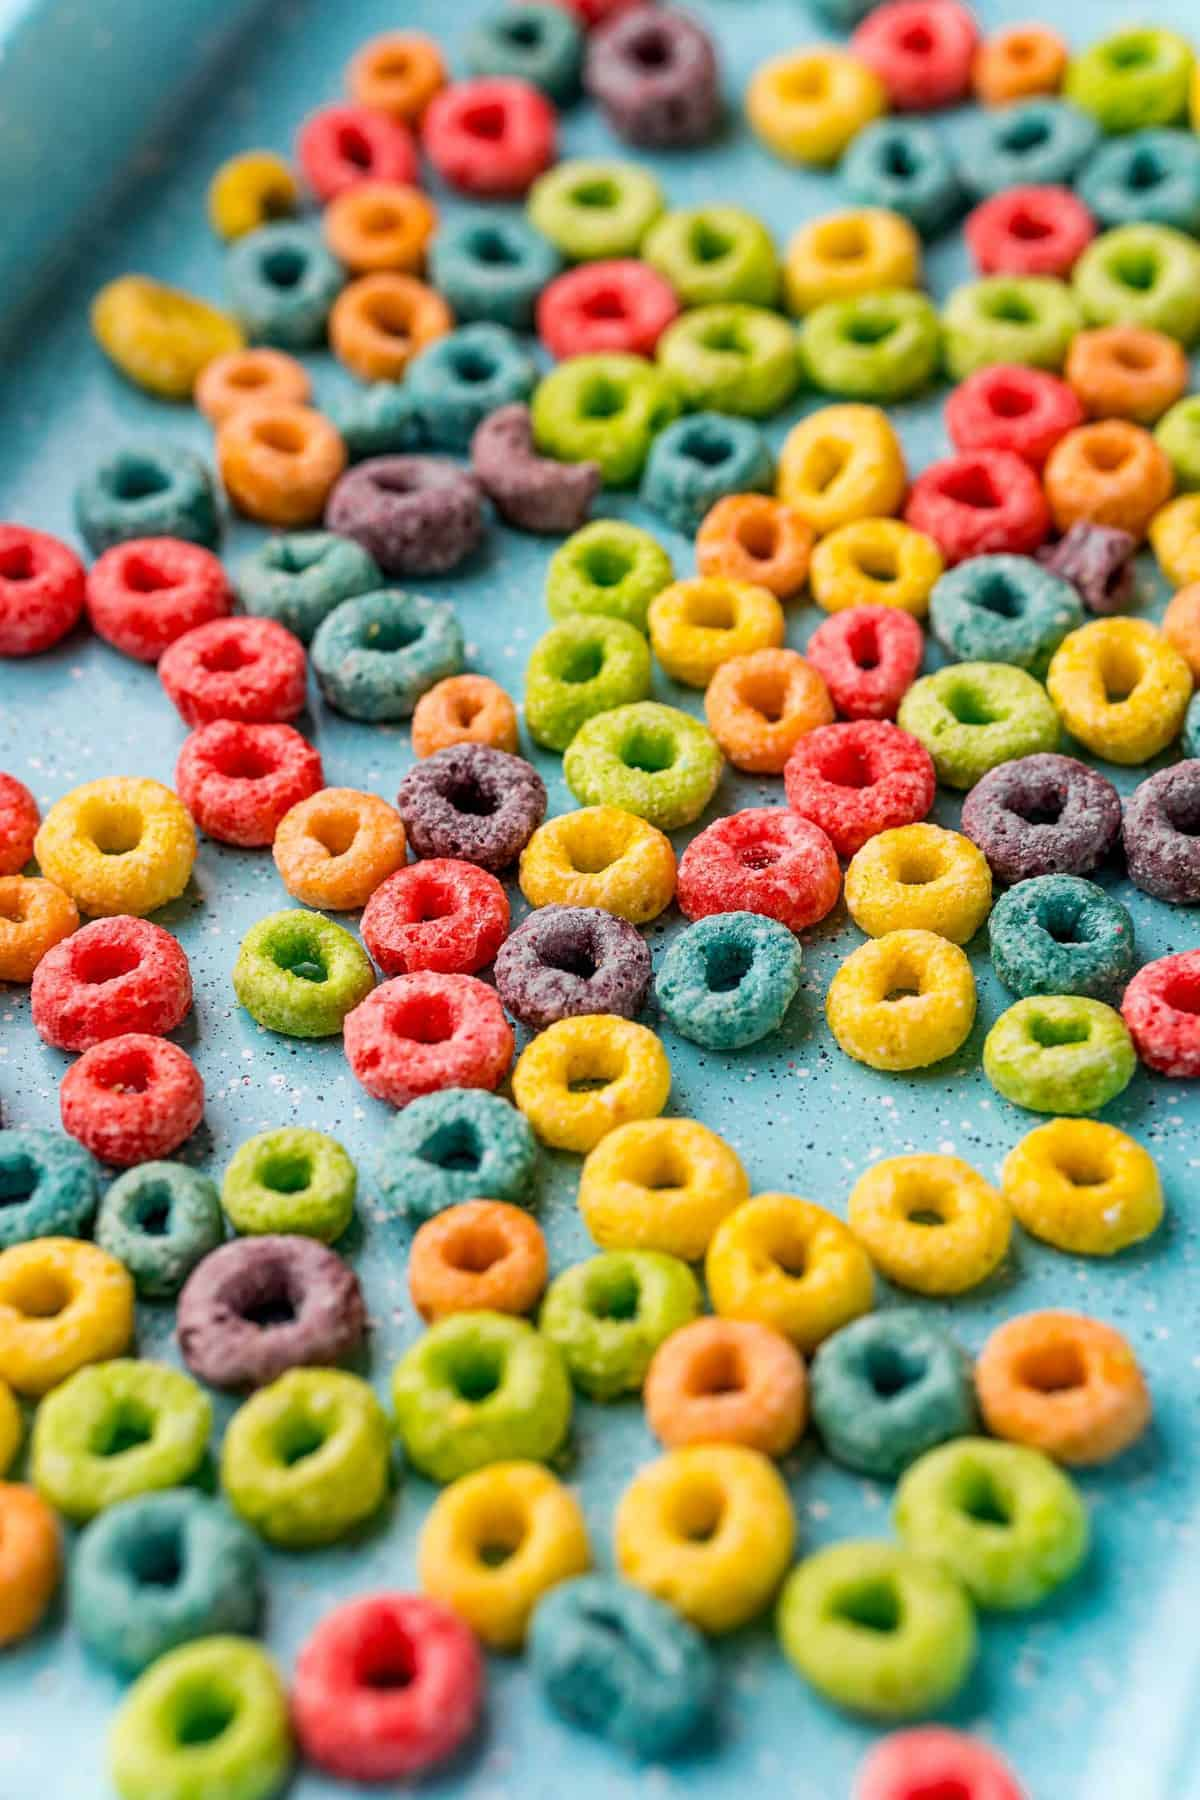 Froot loops on a blue baking sheet.